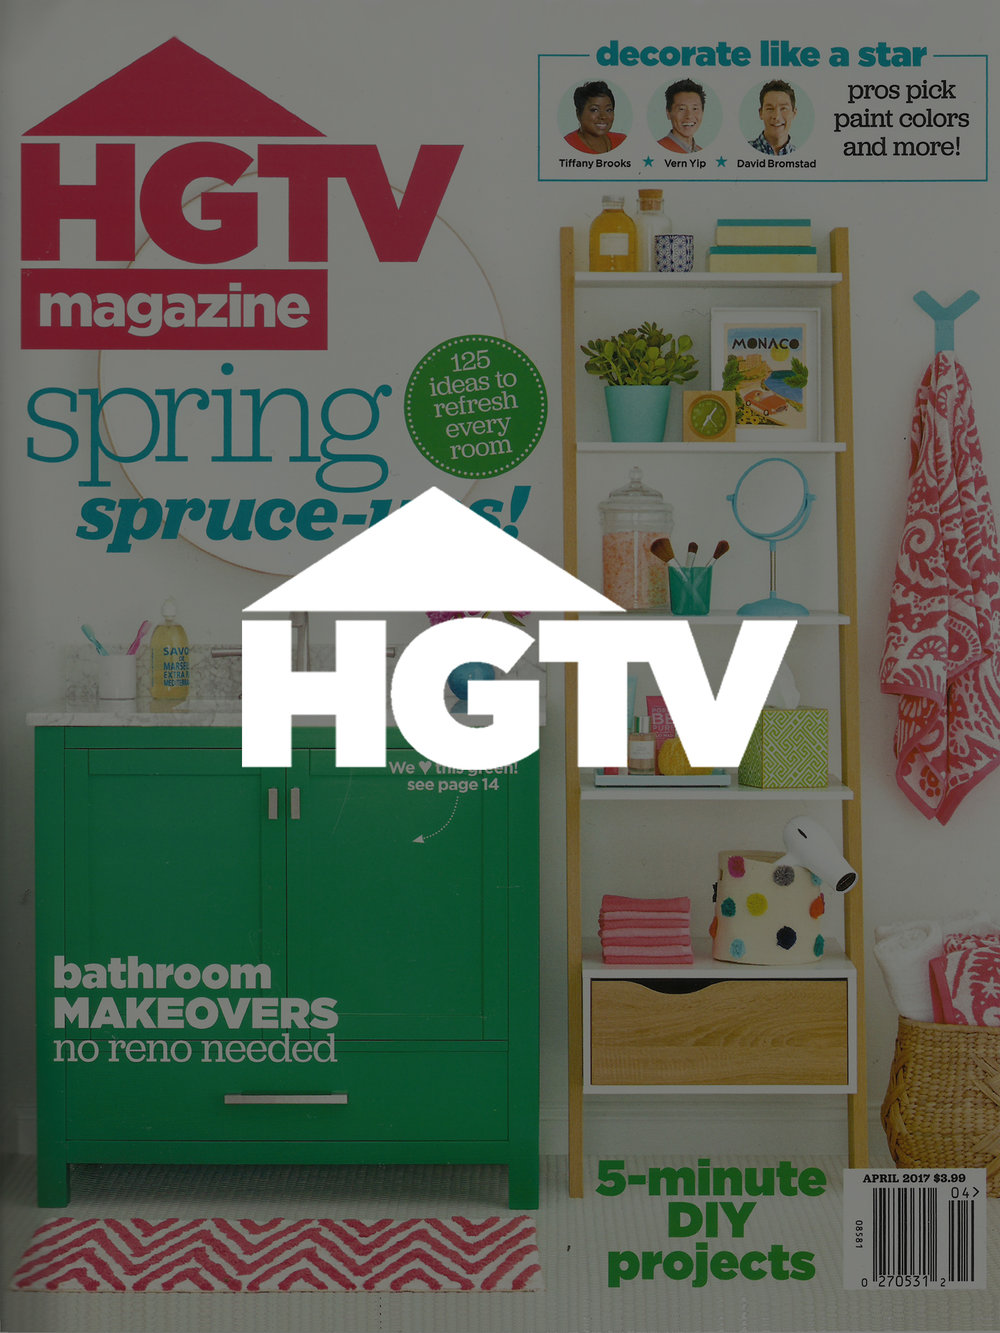 Noz Design | HGTV Magazine April 2017